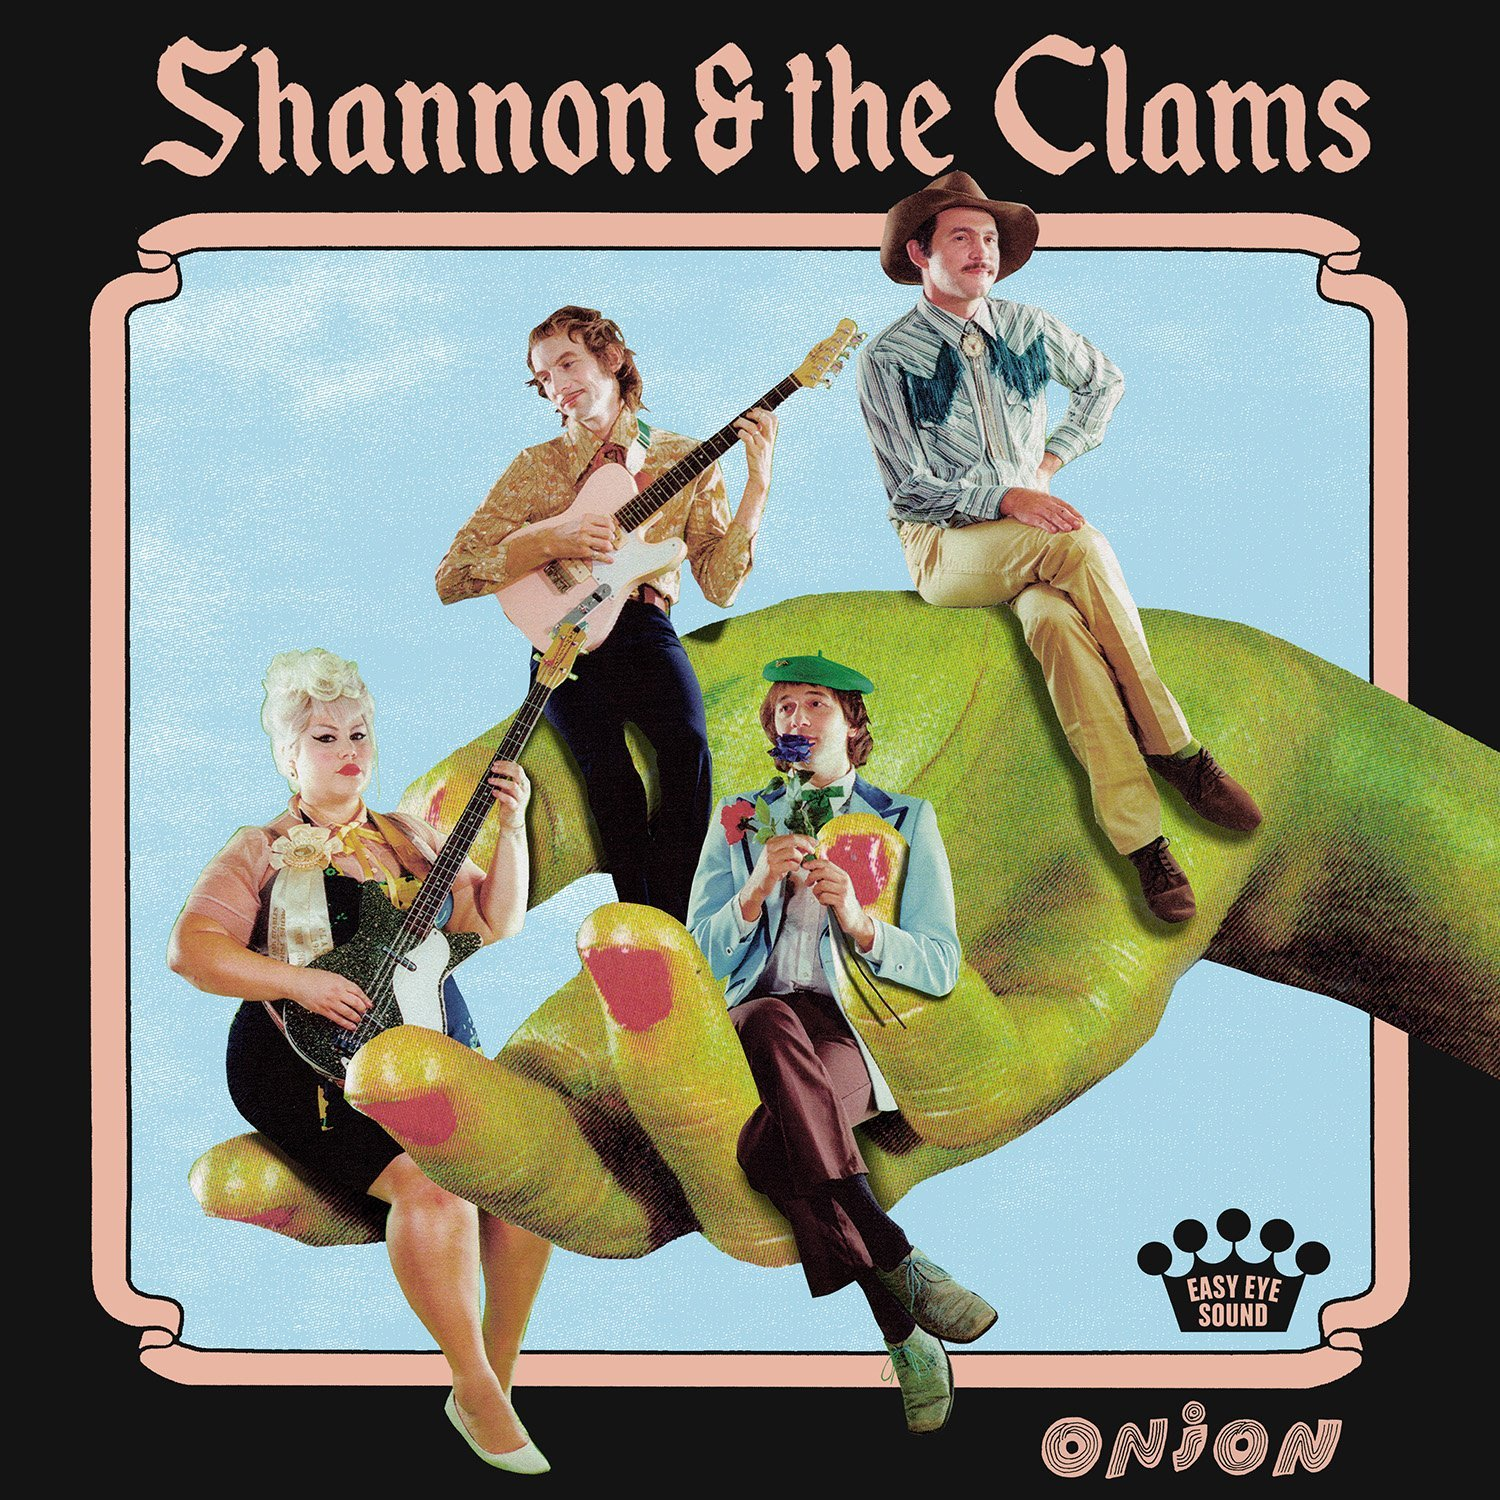 Northern Transmissions' review of 'Onion' by Shannon & The Clams